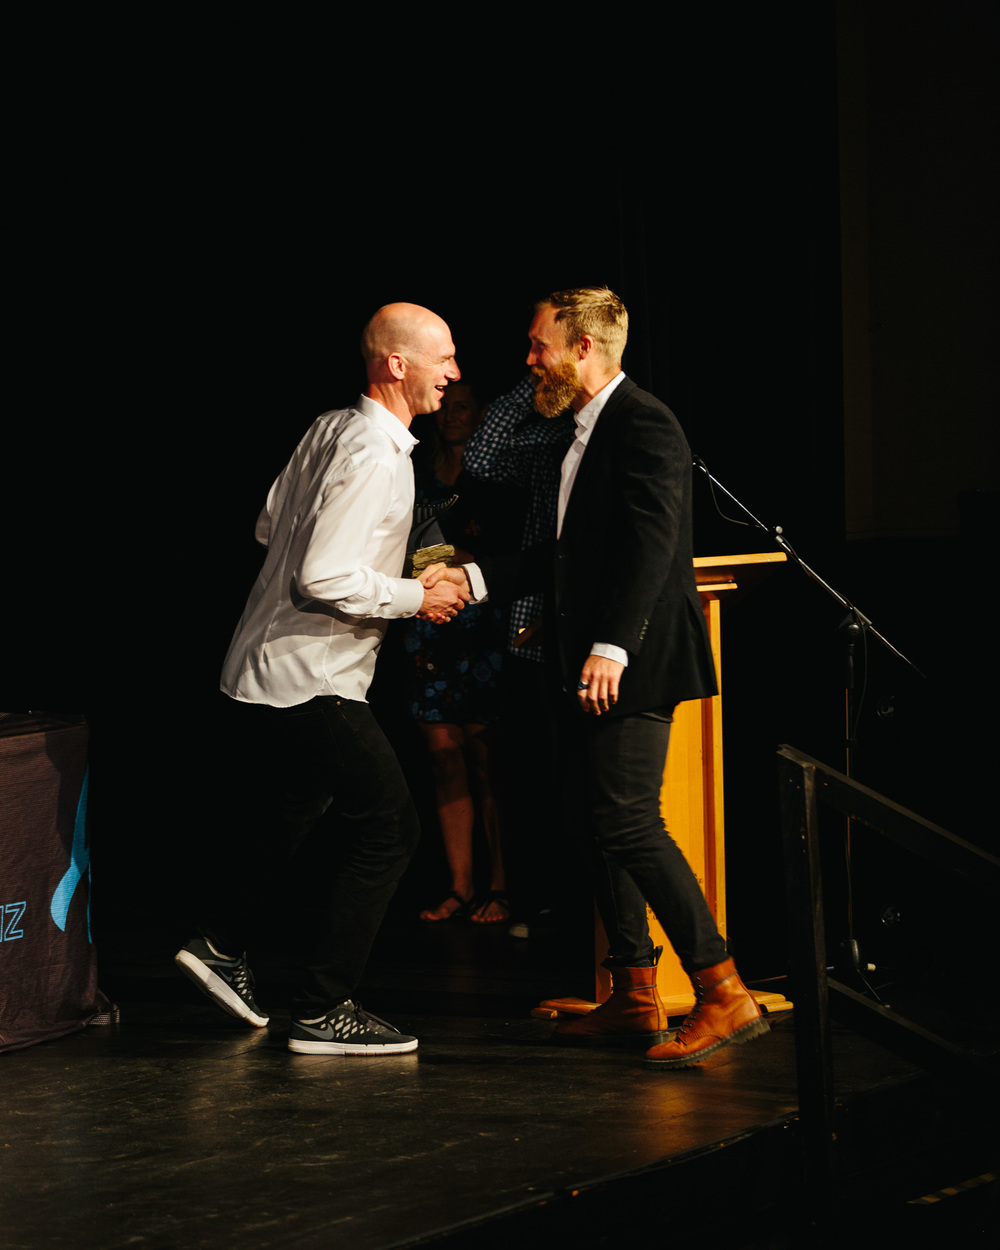 SSNZ_Awards Night-42.jpg